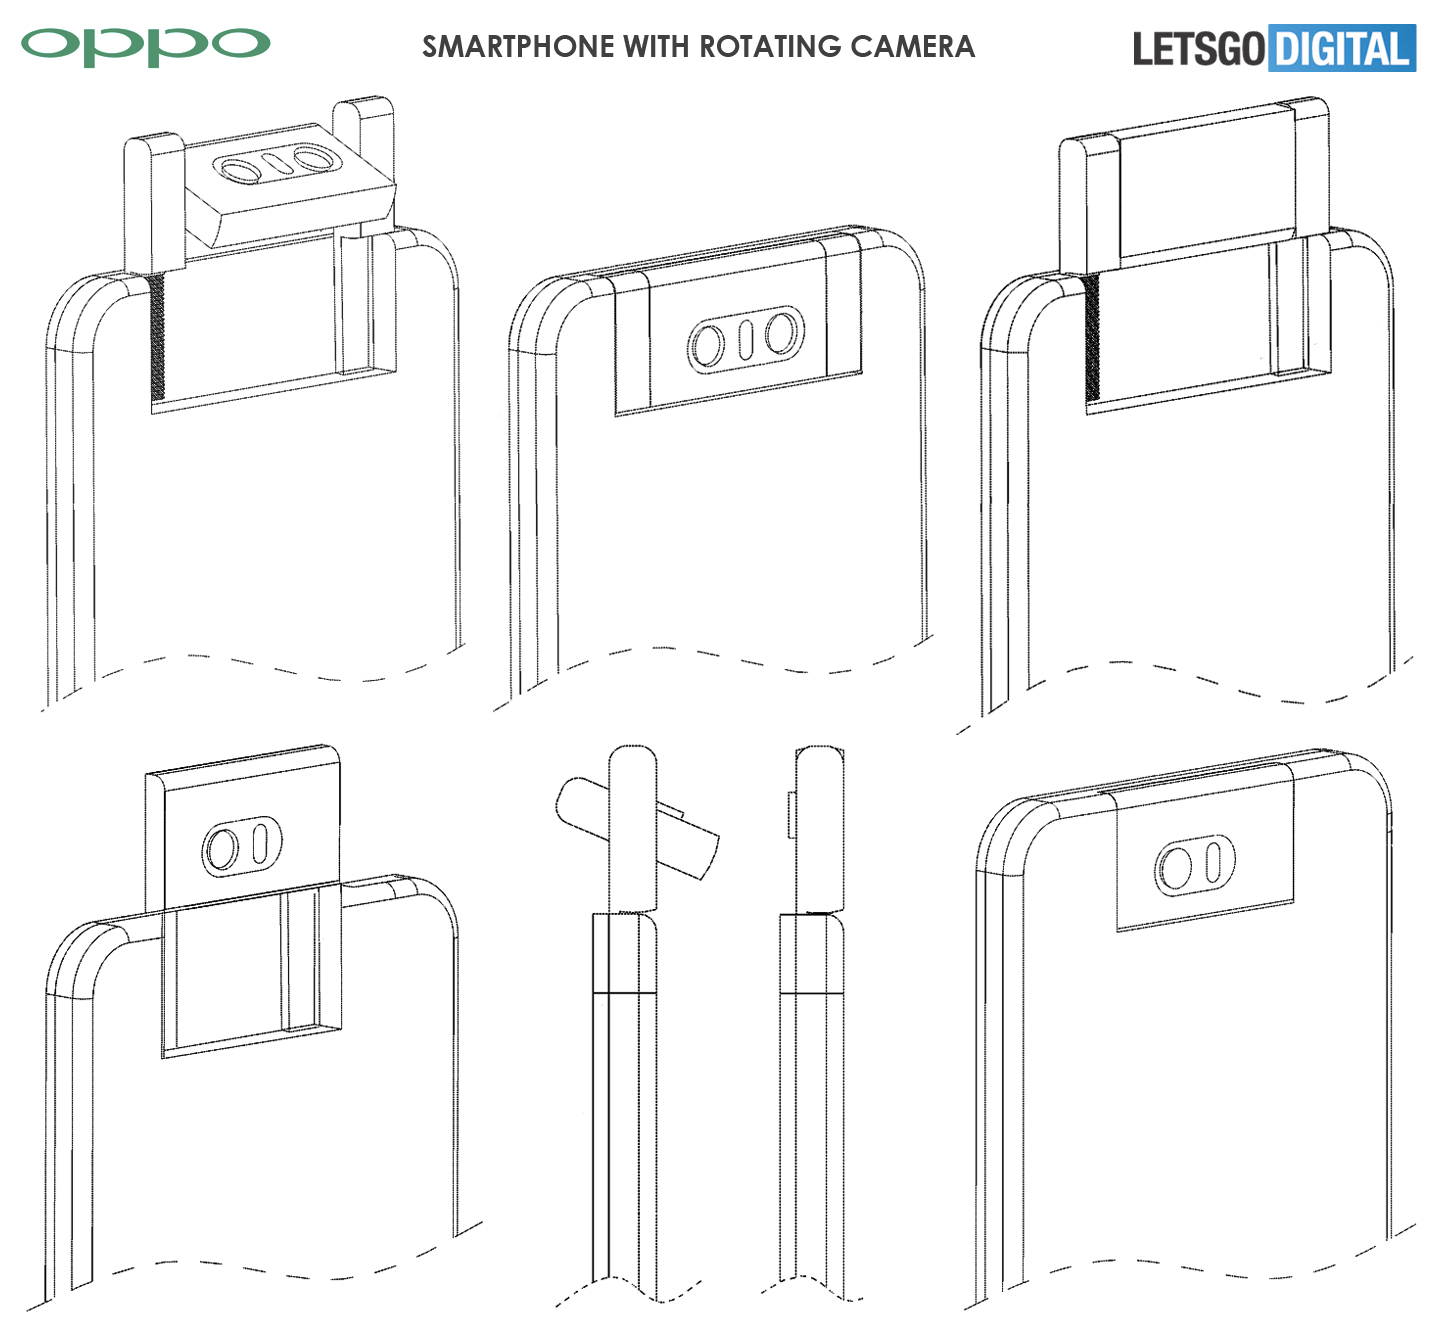 Oppo telefoon roterend camerasysteem